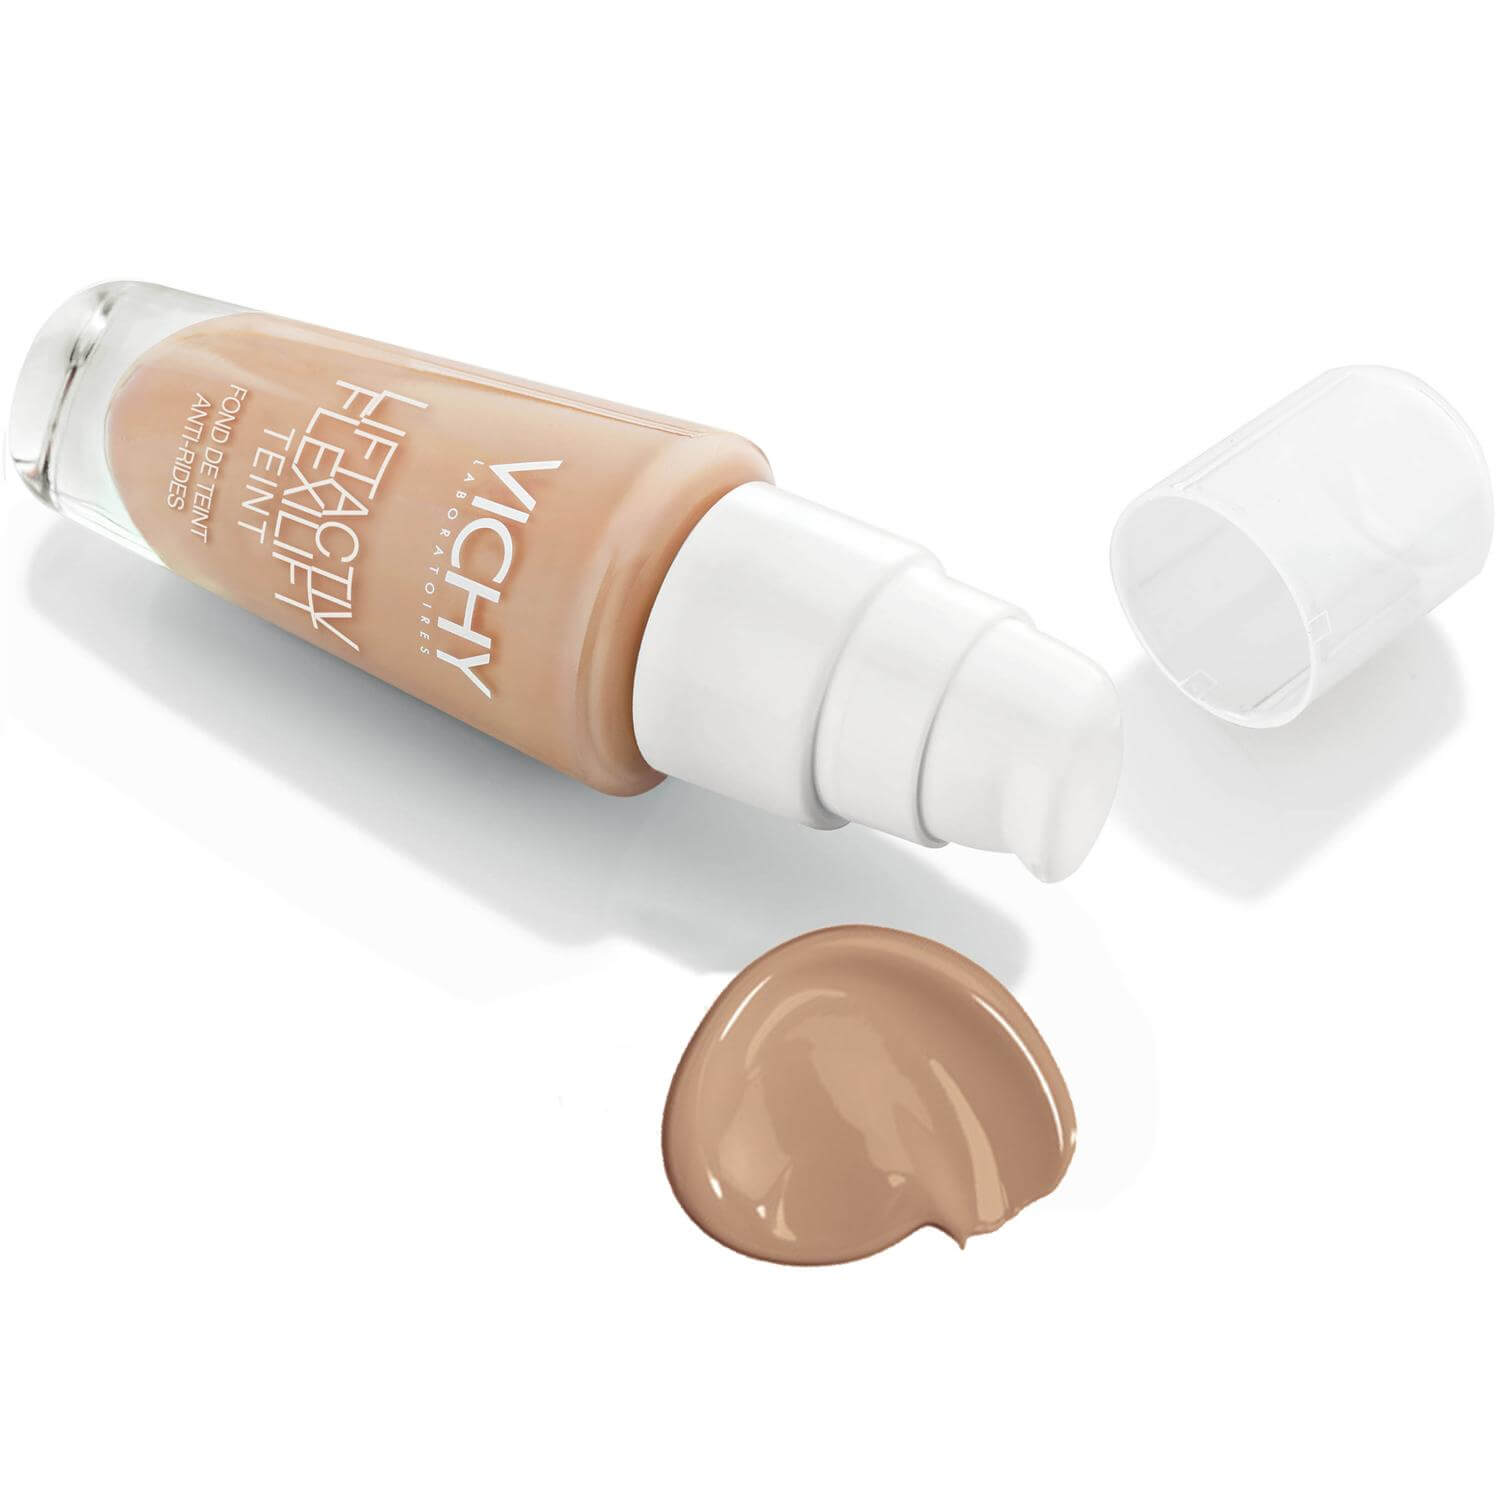 Vichy Liftactiv Flexilift Teint Make-up για Άμεσο Αποτέλεσμα Lifting & Λάμψης 30ml – 25 nude